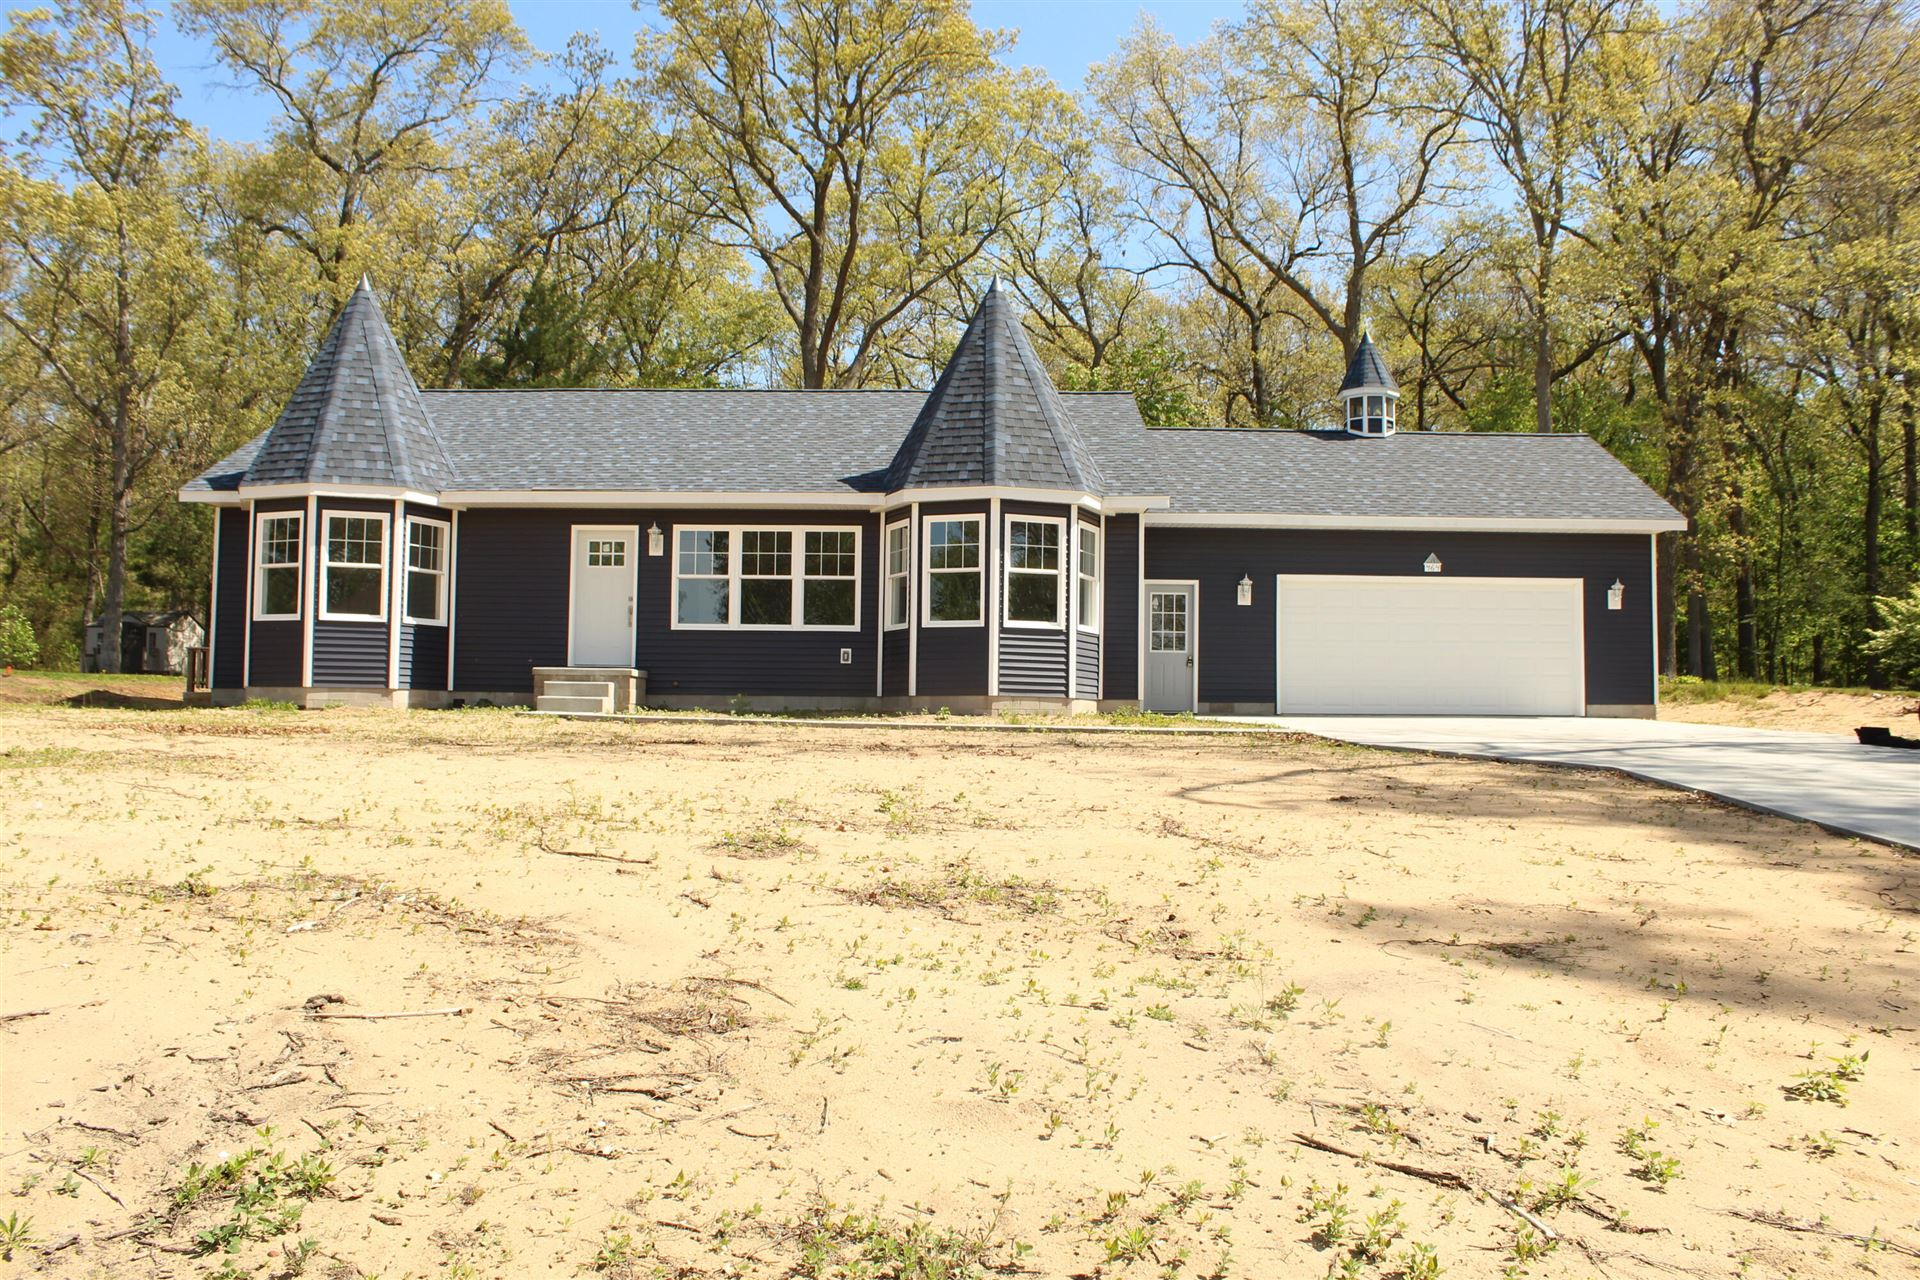 464 Grover Road, Muskegon, MI 49442 - MLS#: 21002660